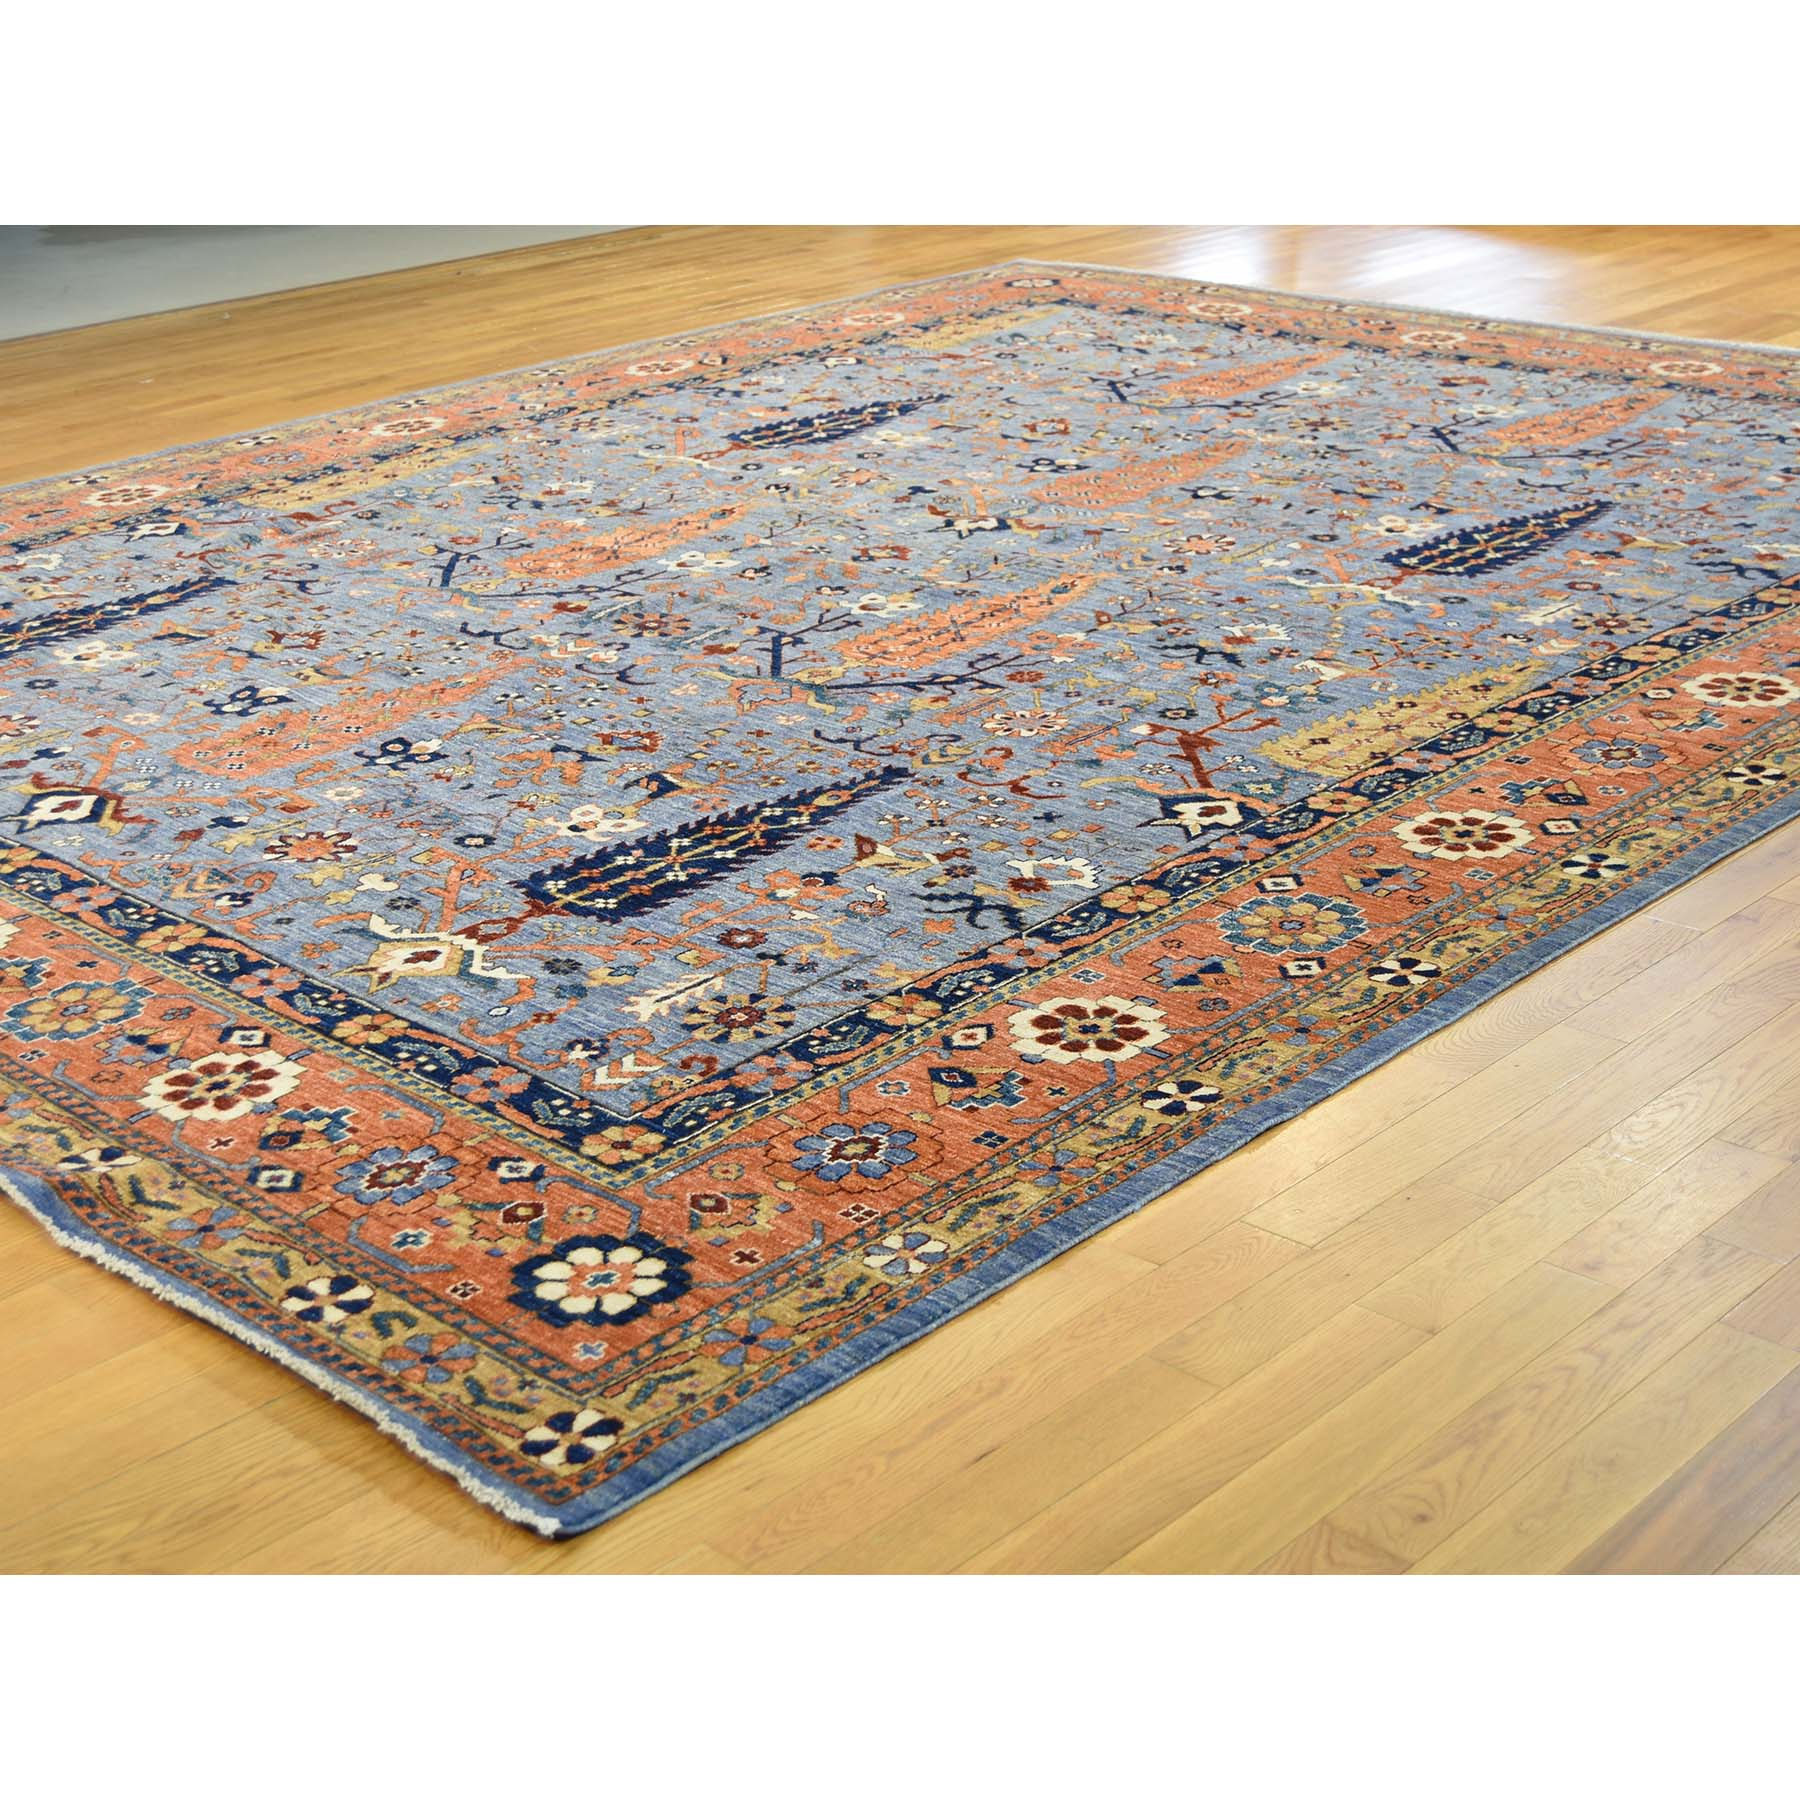 11-10--x15- Hand Knotted Willow And Cypress Tree Design Oversize Peshawar Rug